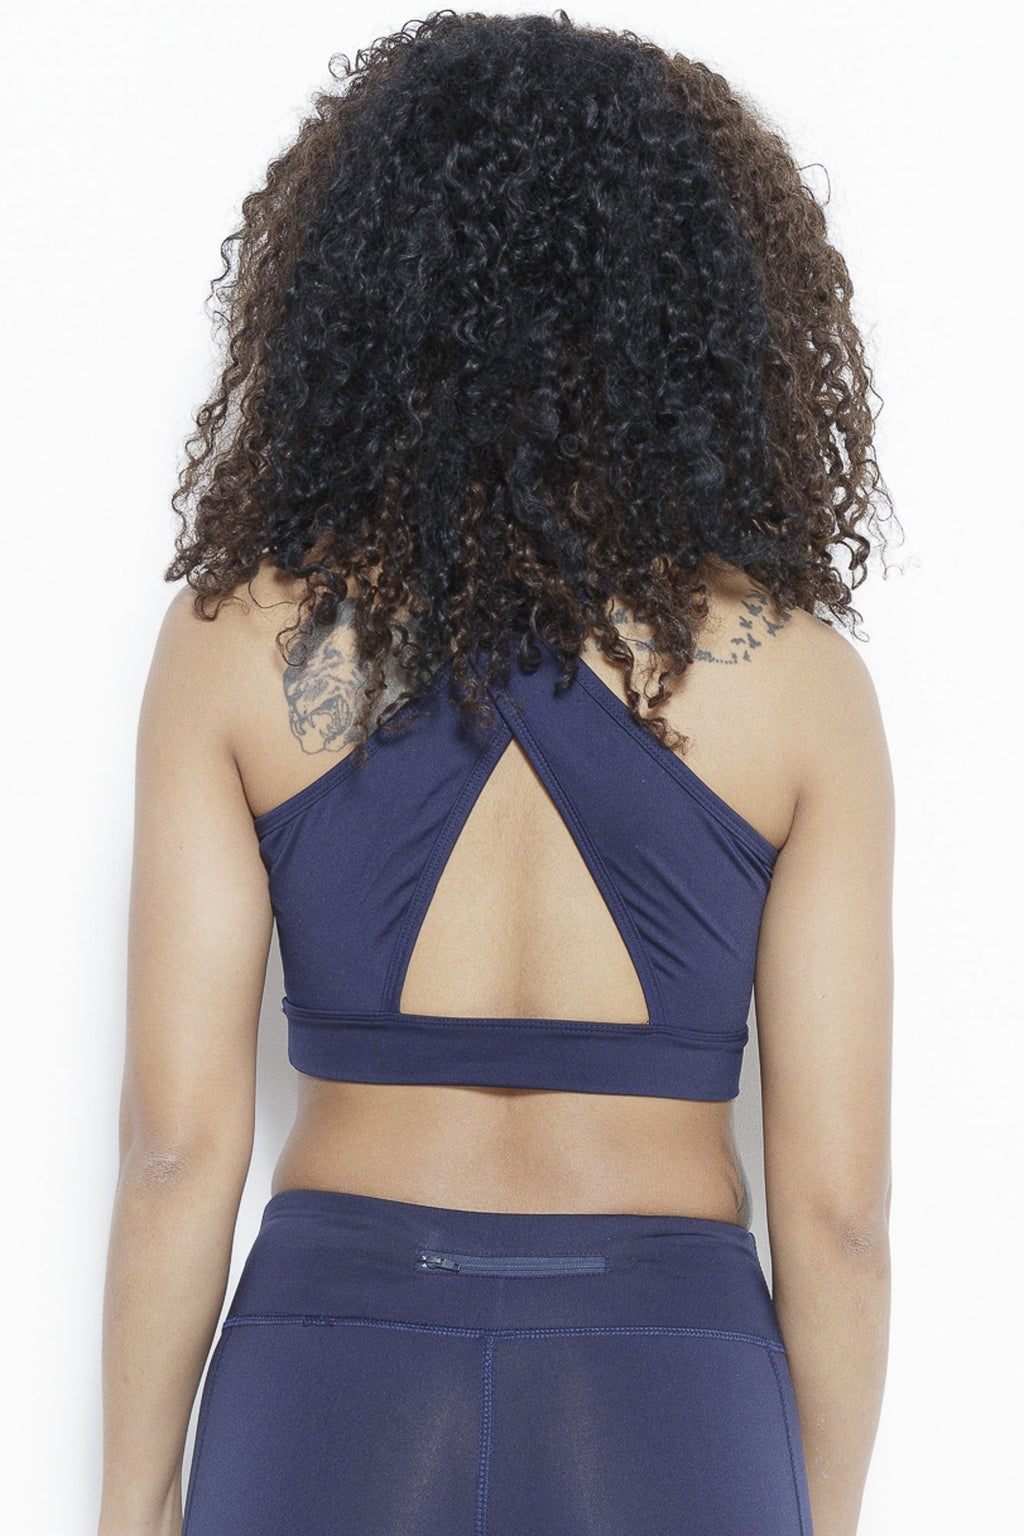 Jazzy Cross Sports Bra-Navy Clothing Fair Shade